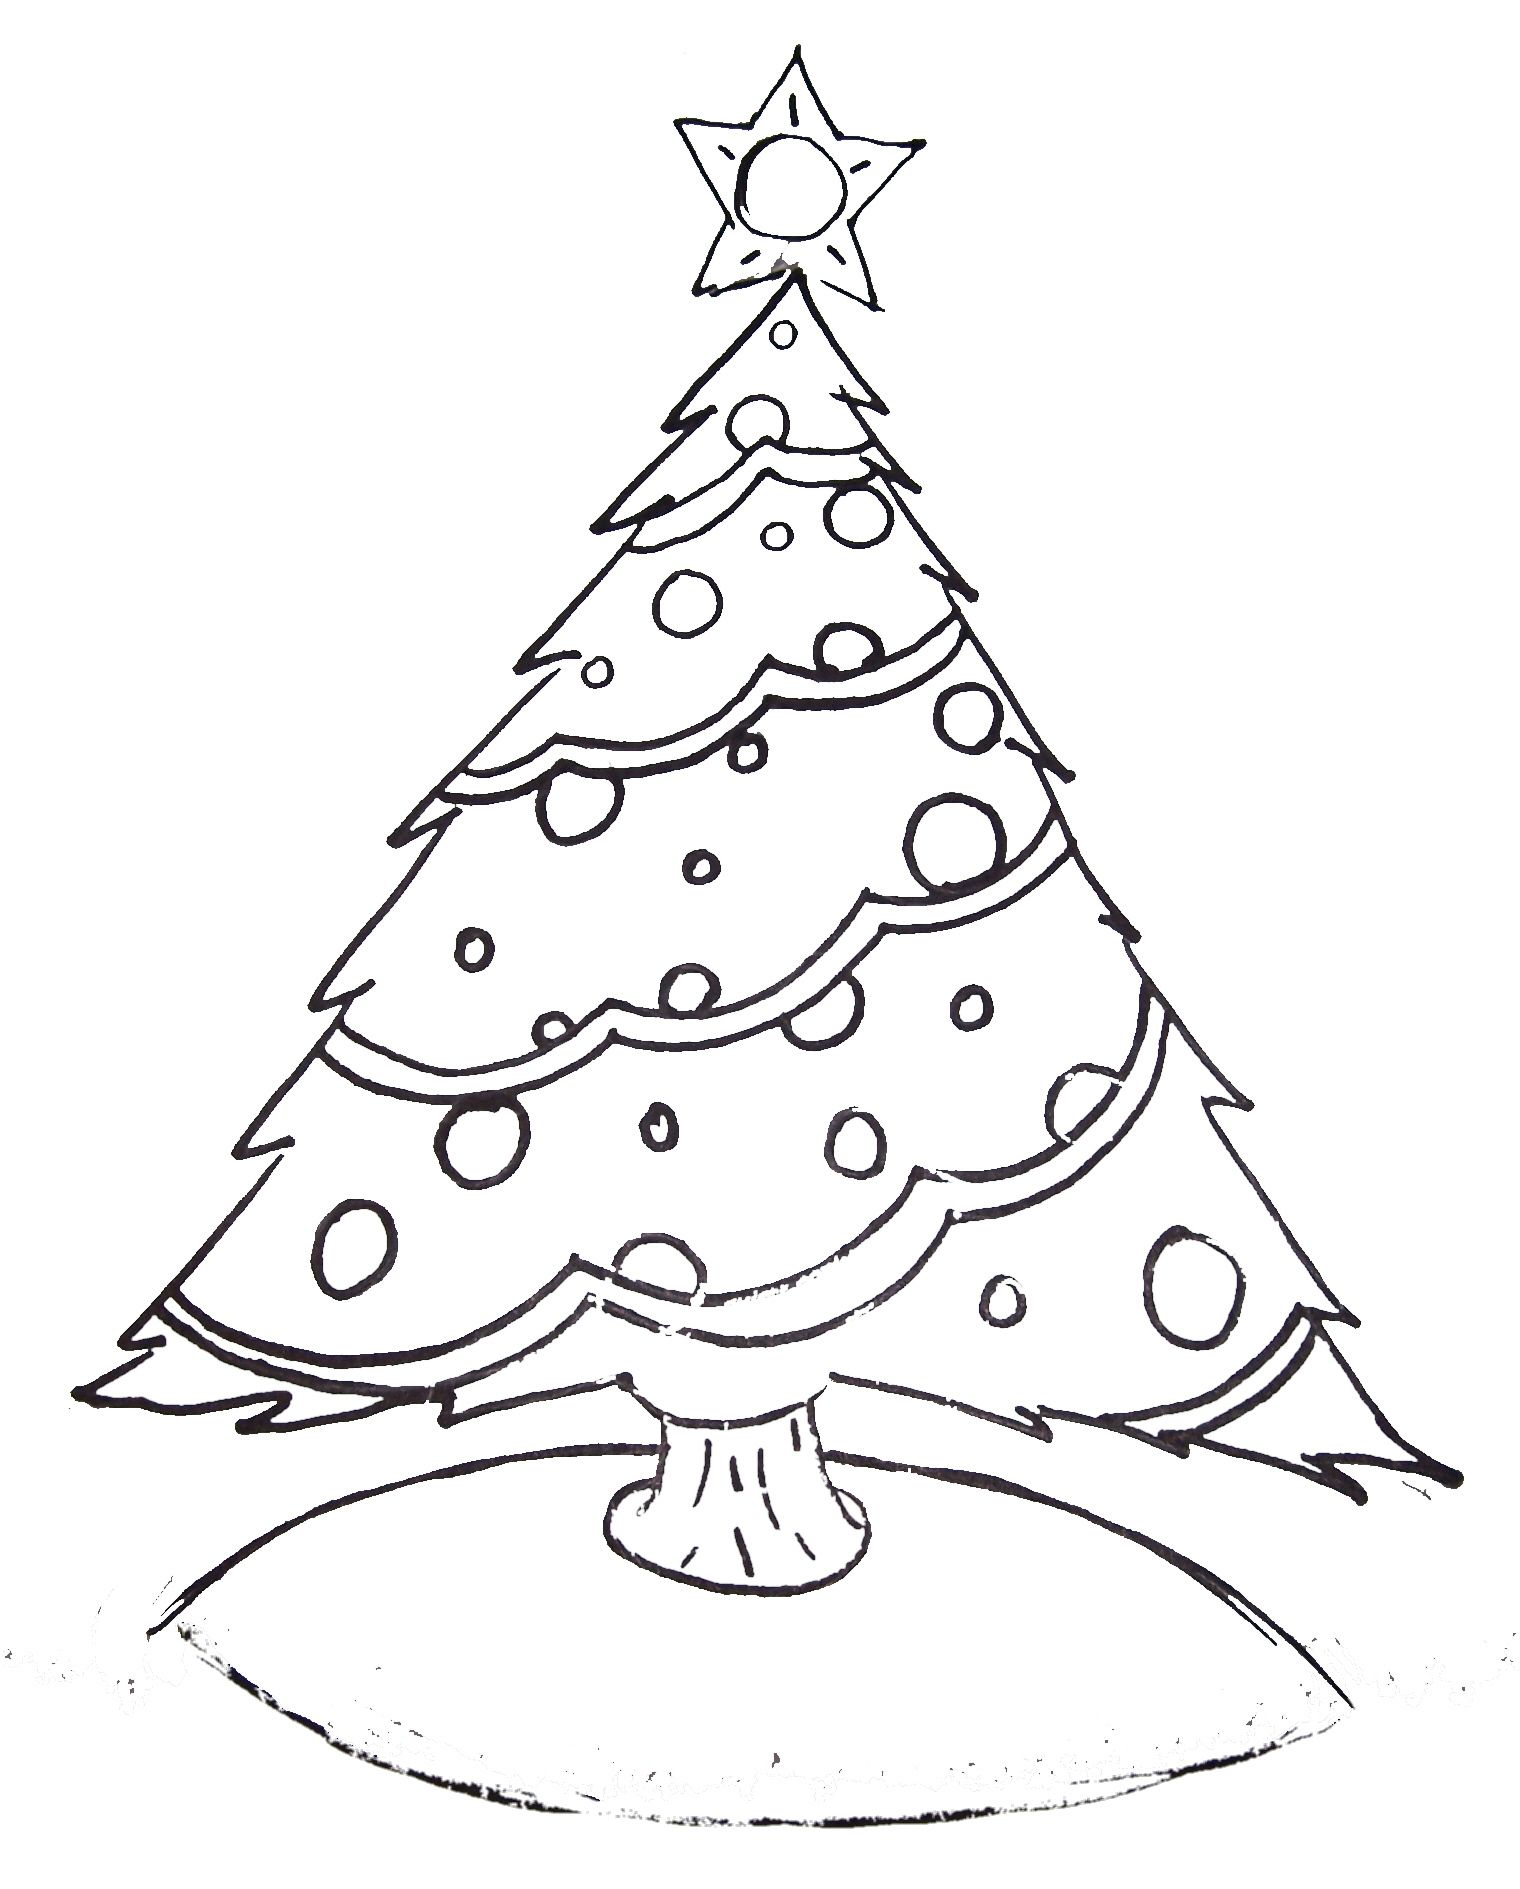 Coloring pages of christmas trees for kids - Free Printable Christmas Tree Coloring Pages